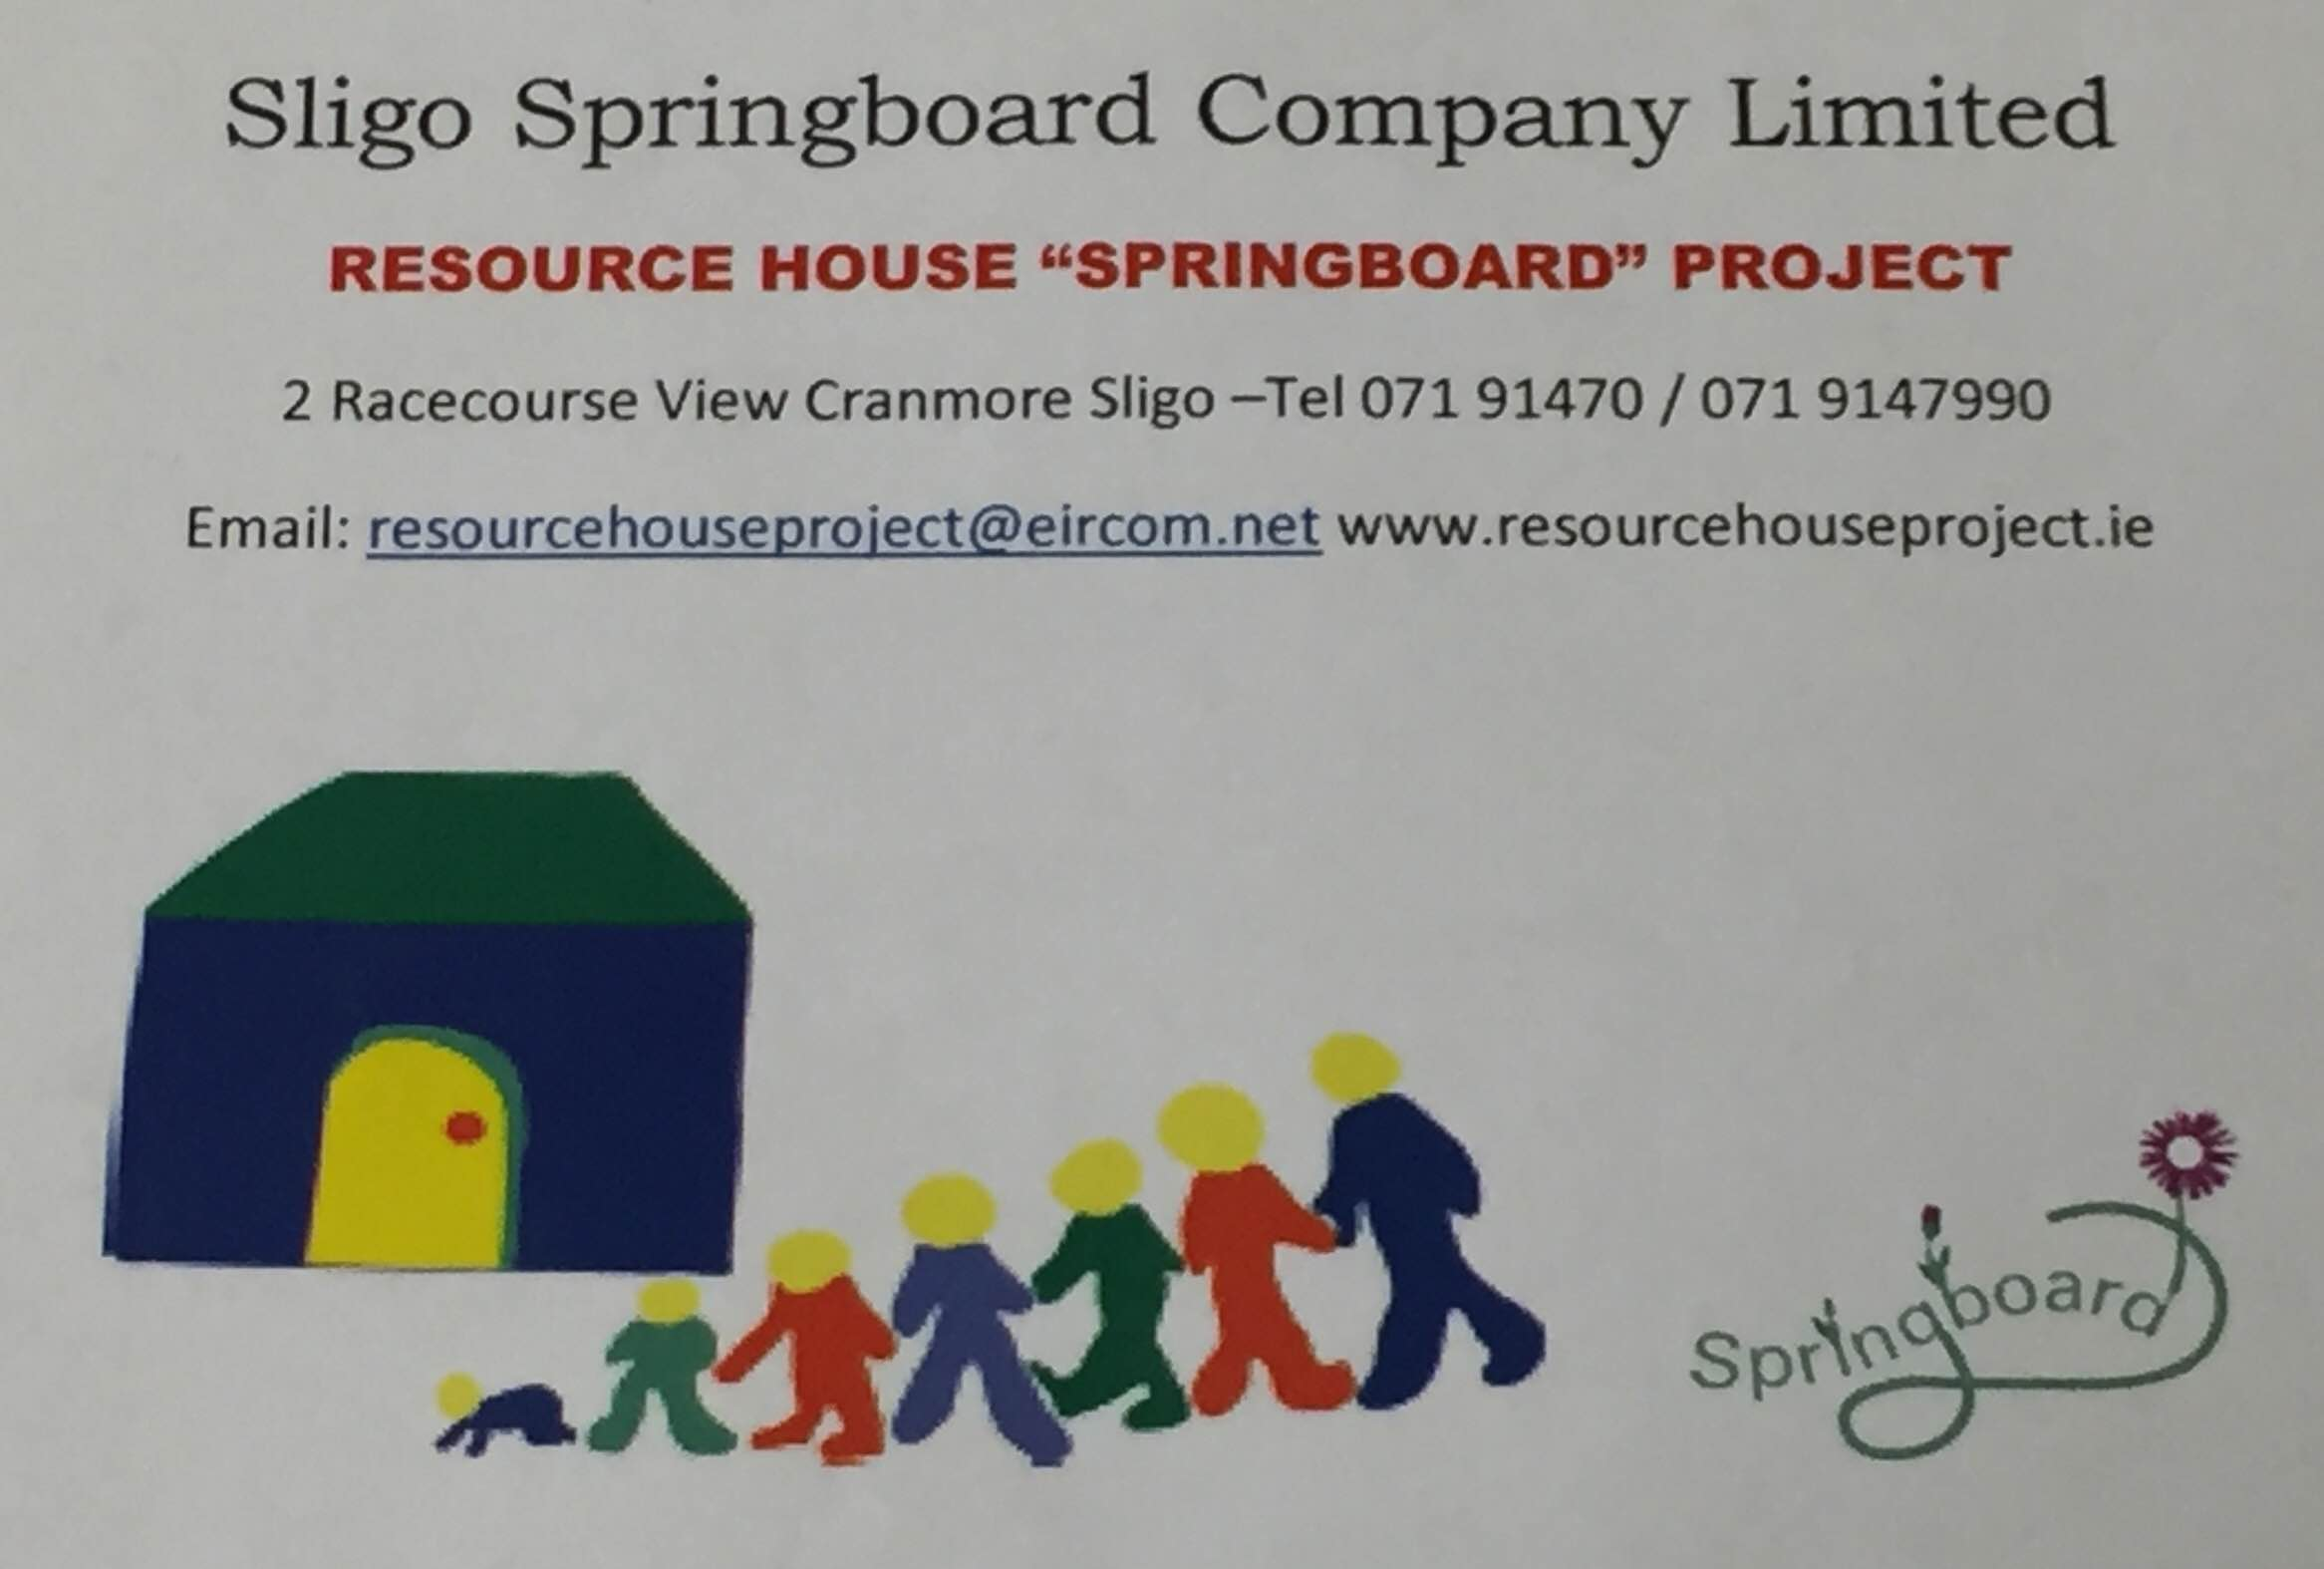 Sligo SPRINGBOARD Resource House Project